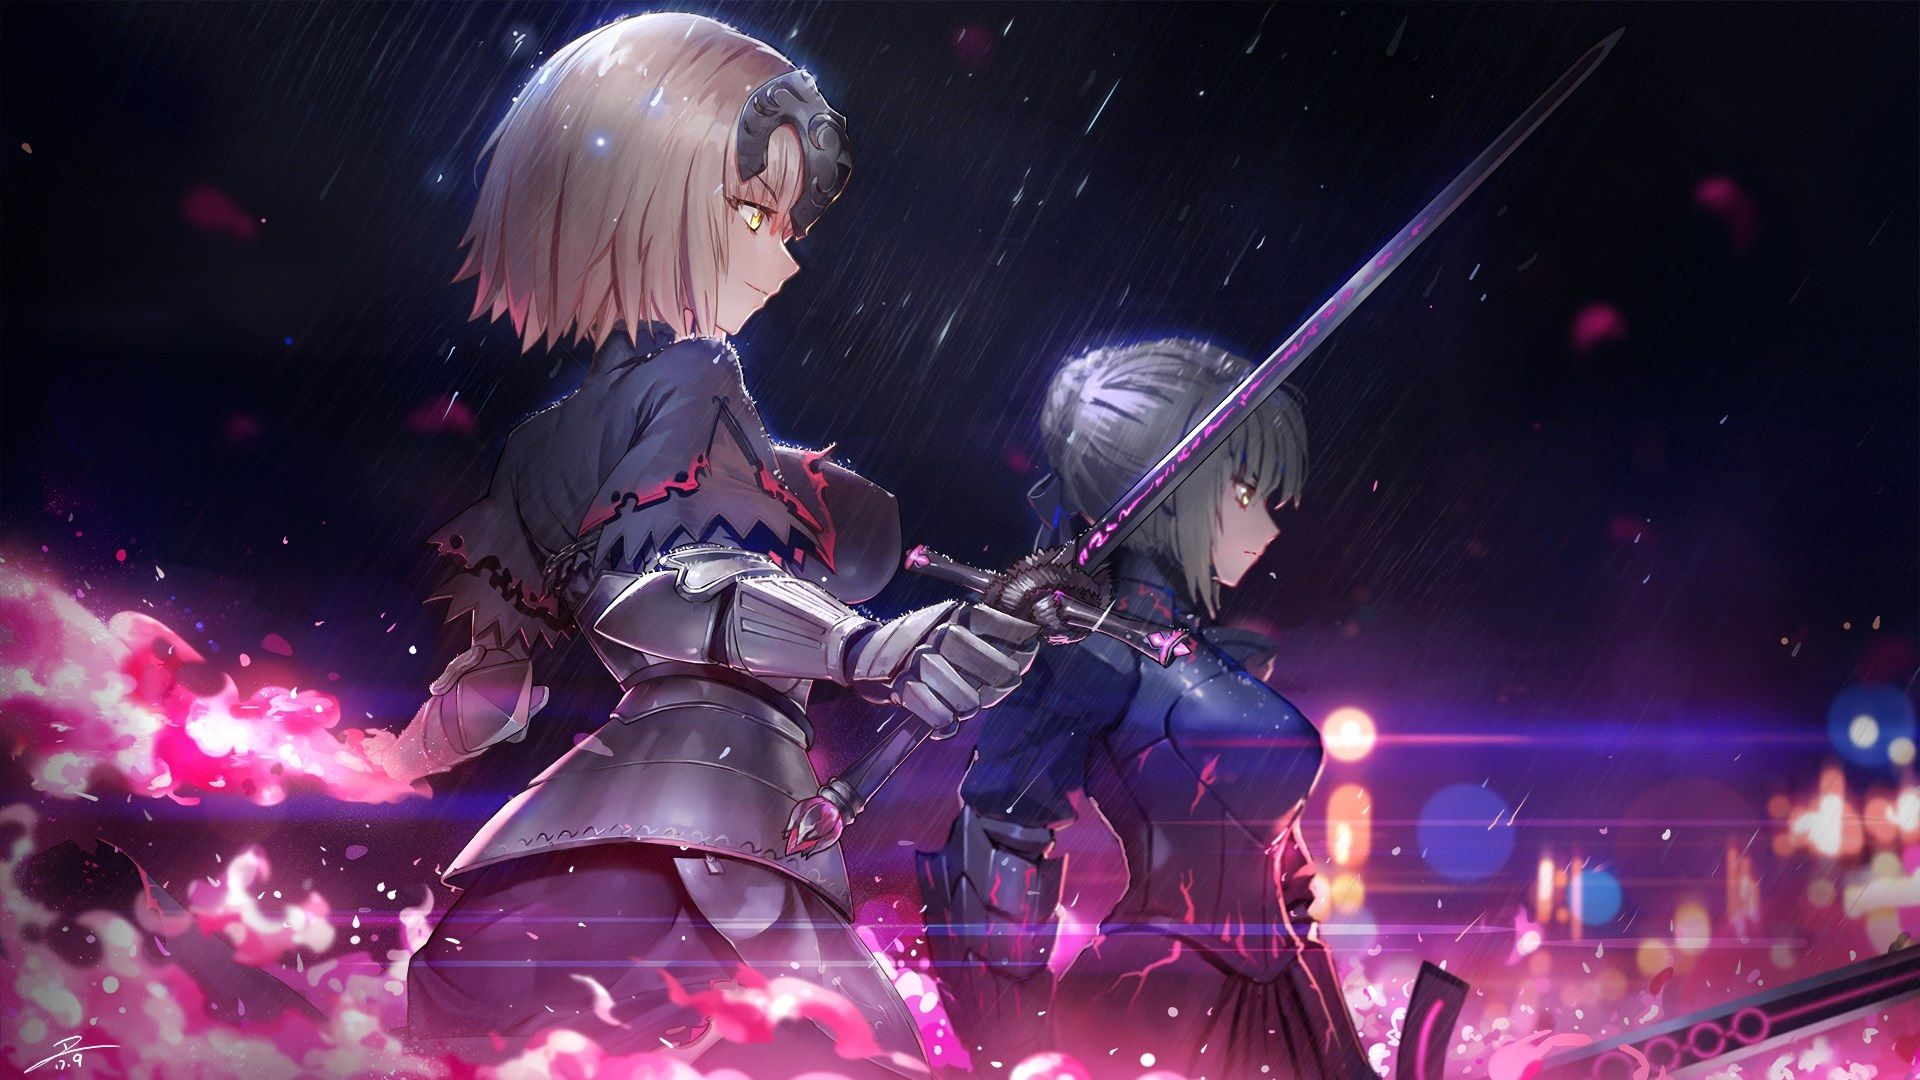 1920x1080 Fate Grand Order Wallpaper Pictures Free Fate